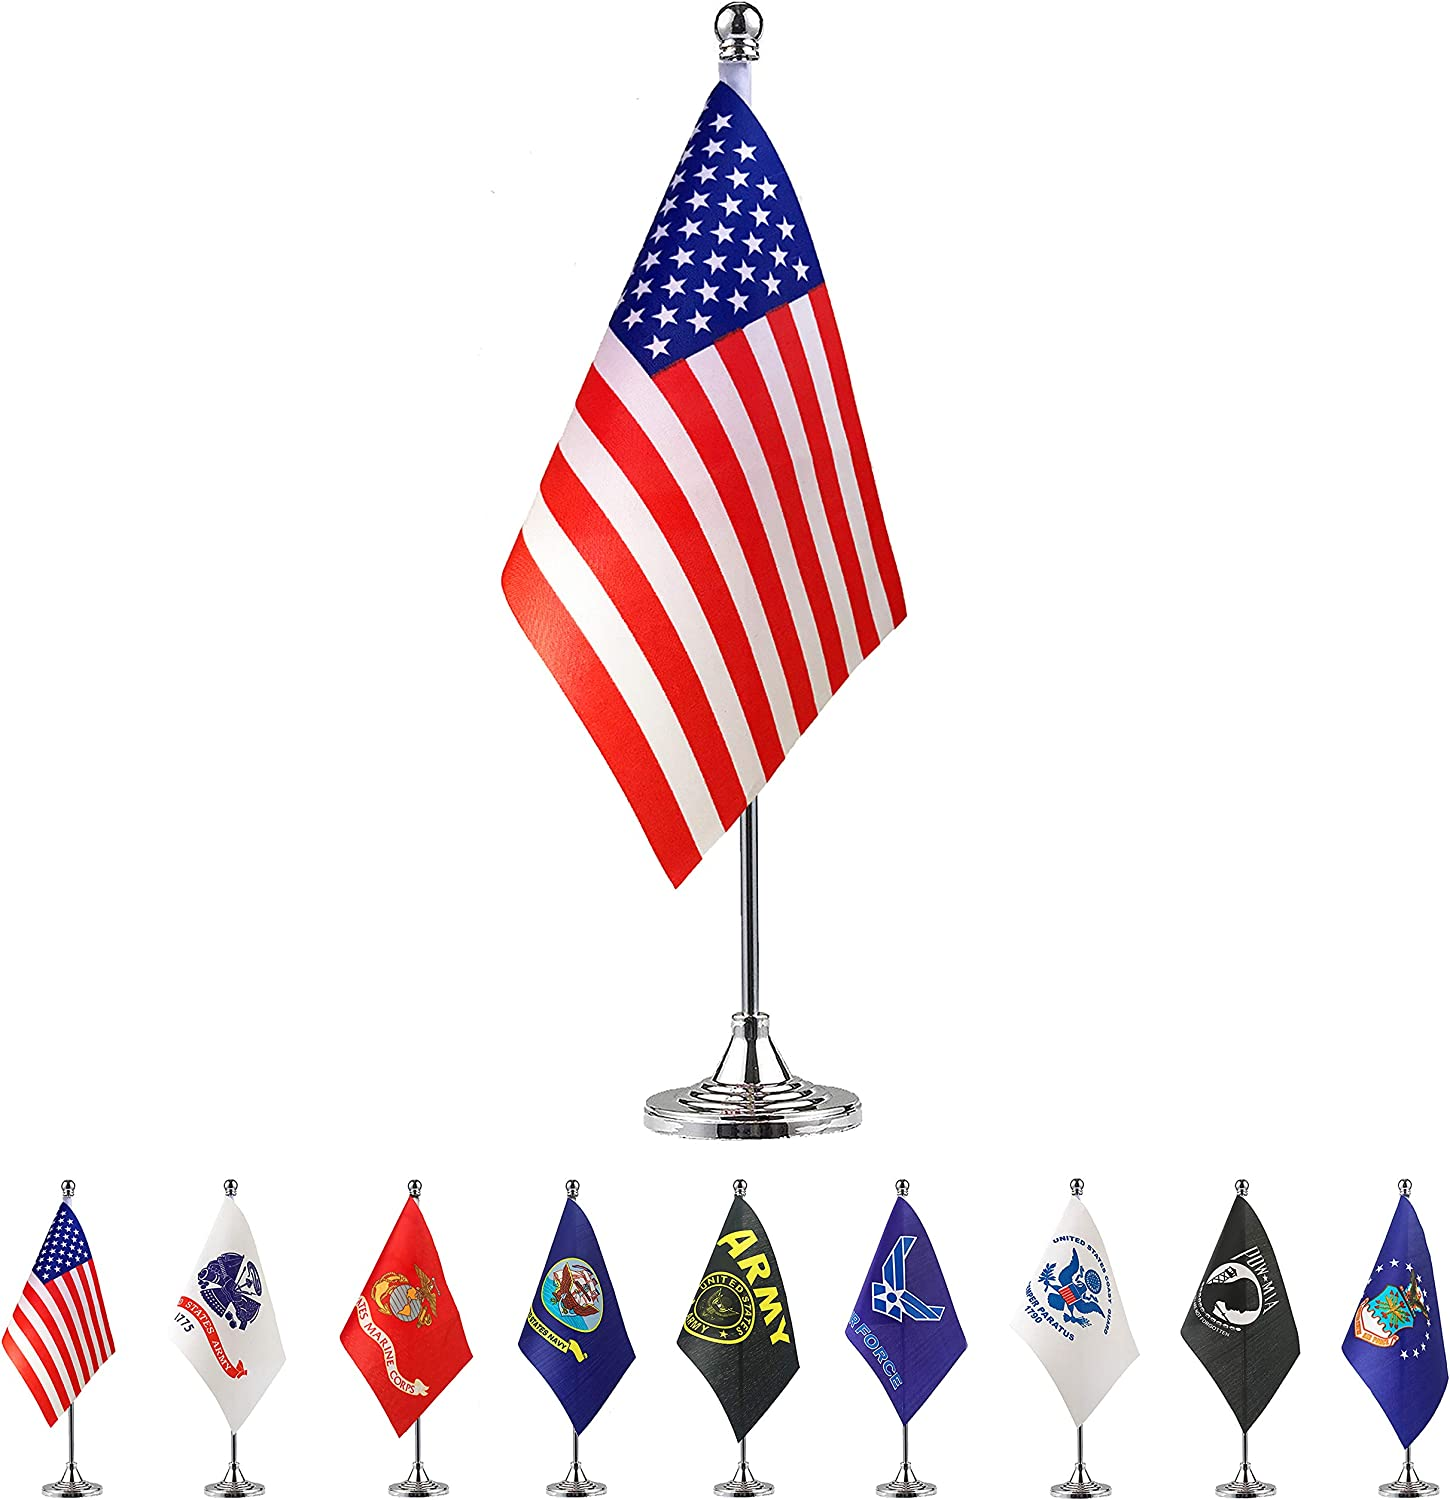 TSMD USA American Desk Flag Small Mini US Table Flags with Stand Base,Party Decorations for 4th of July, Memorial Day,Veteran's Day